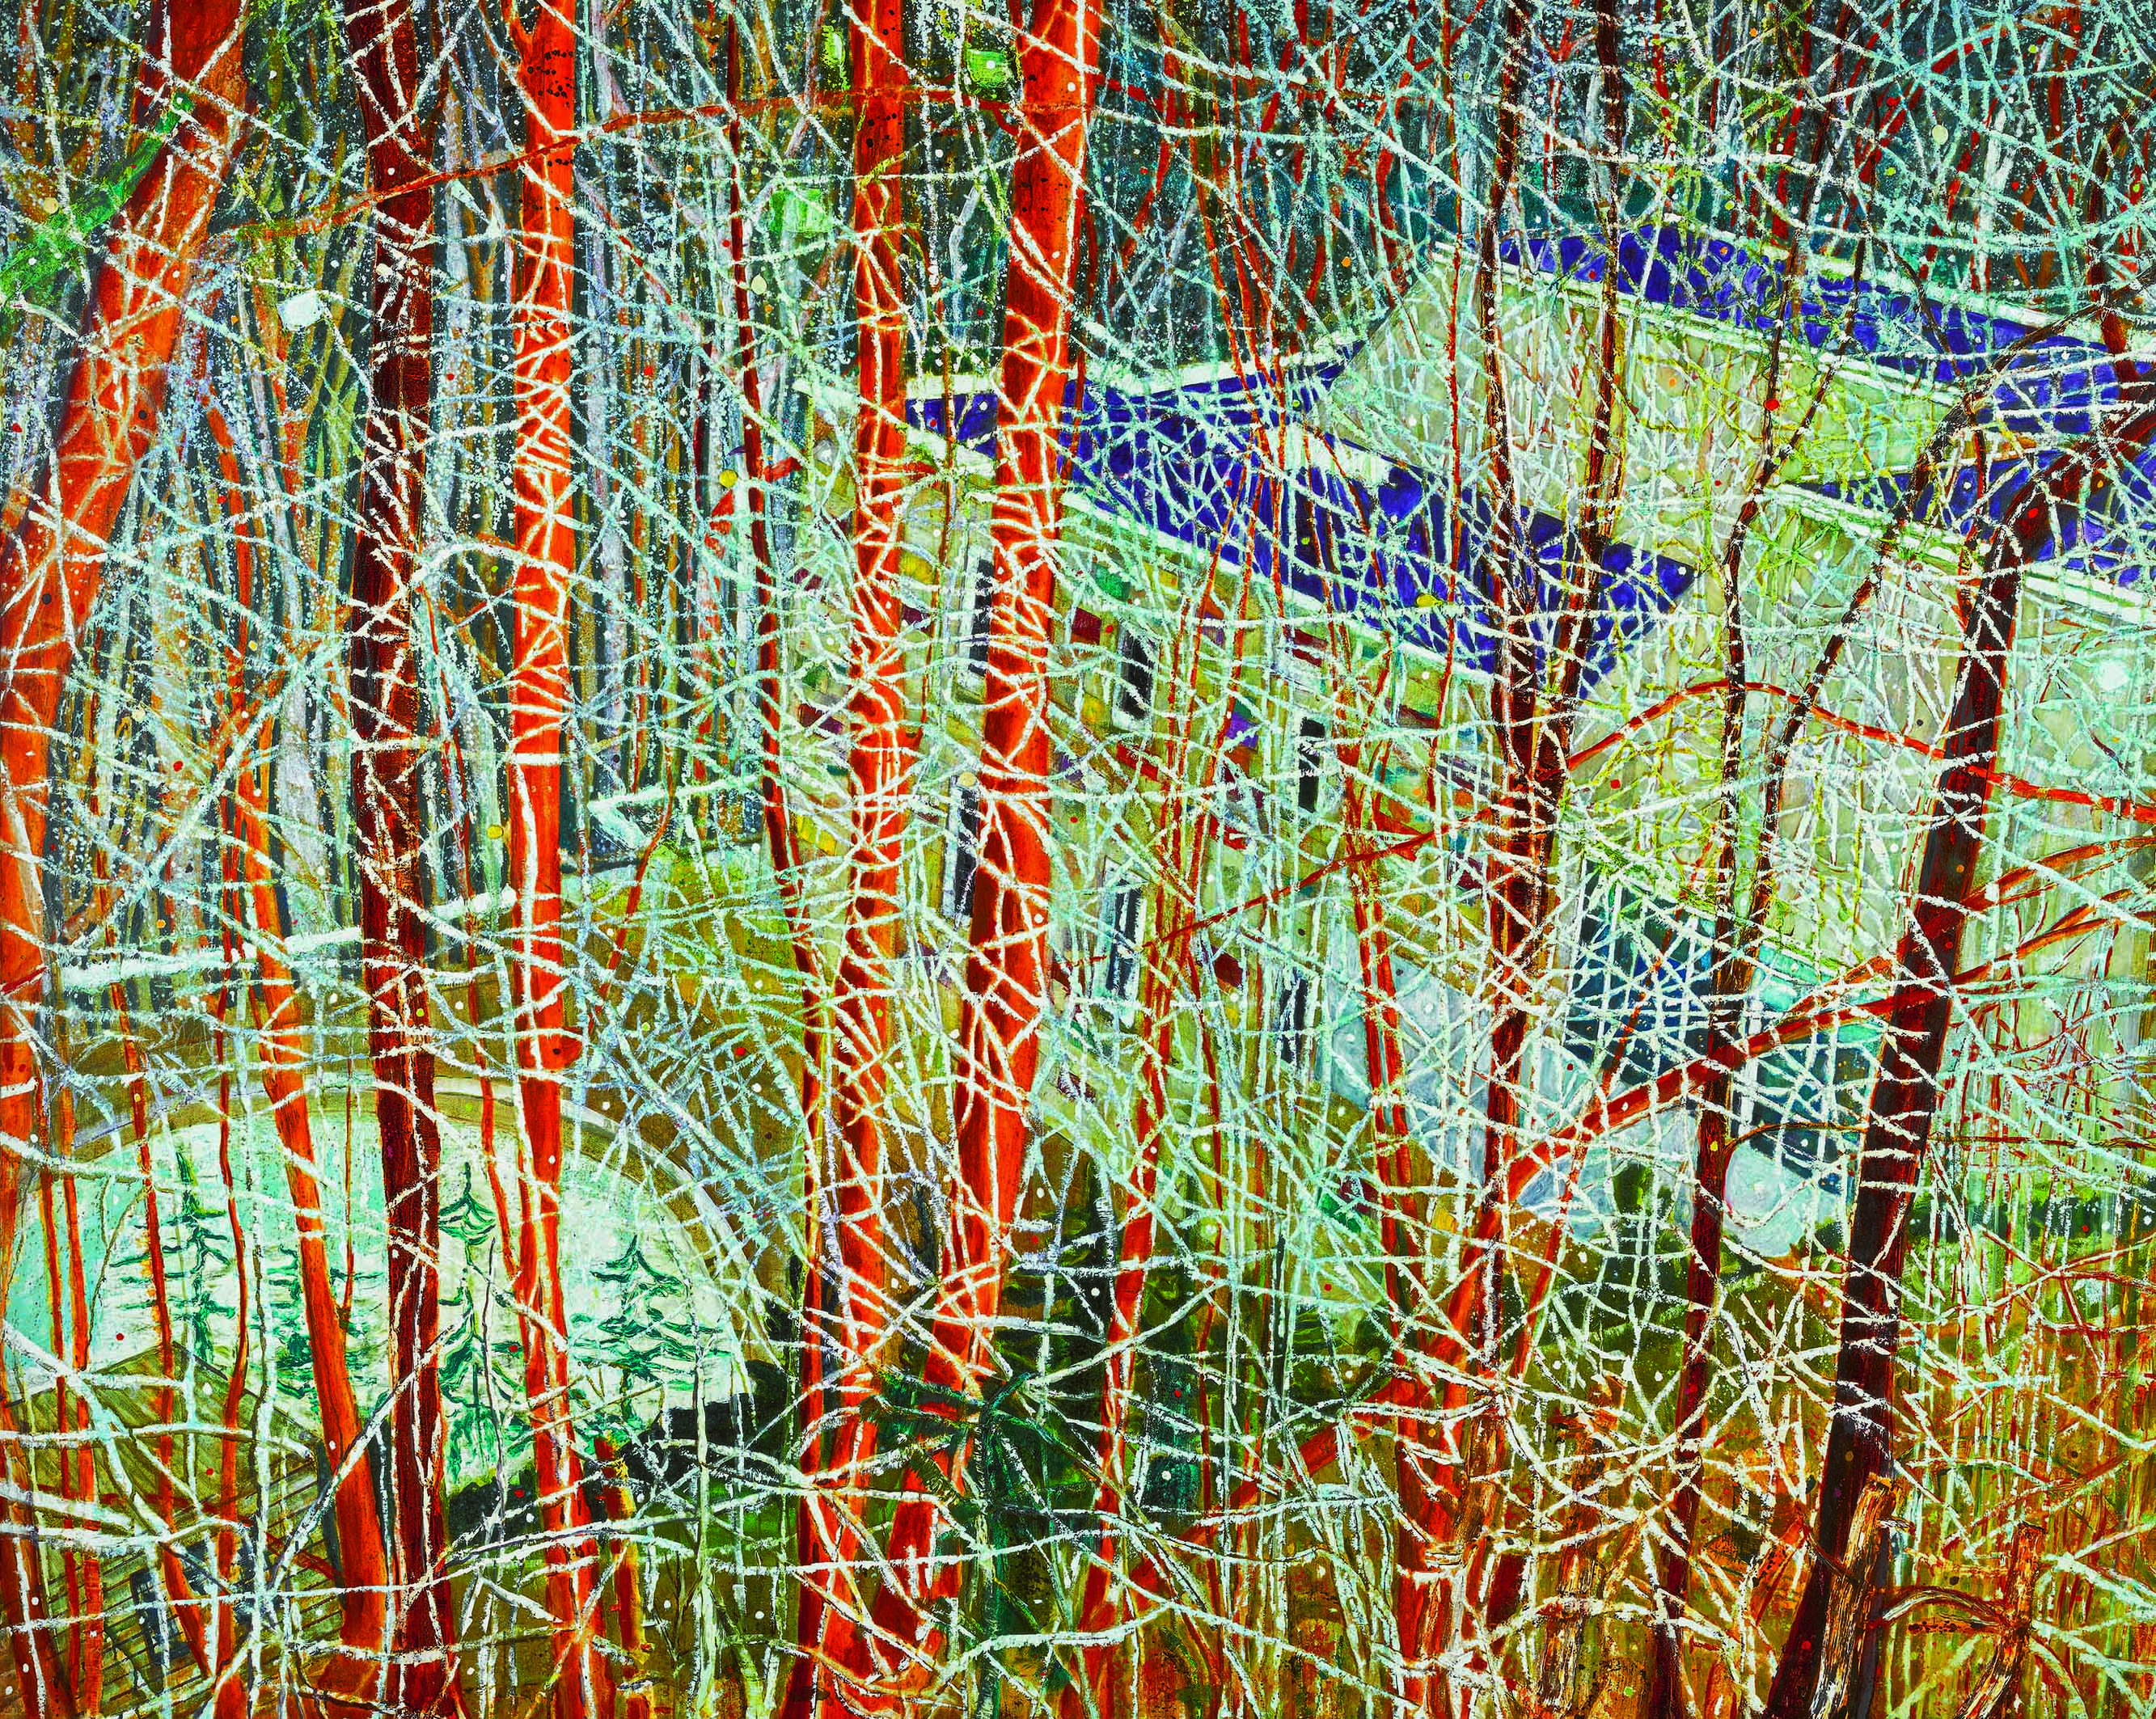 Peter Doig, The Architect's Home in the Ravine (1991), 200x250cm Image via Sotheby's